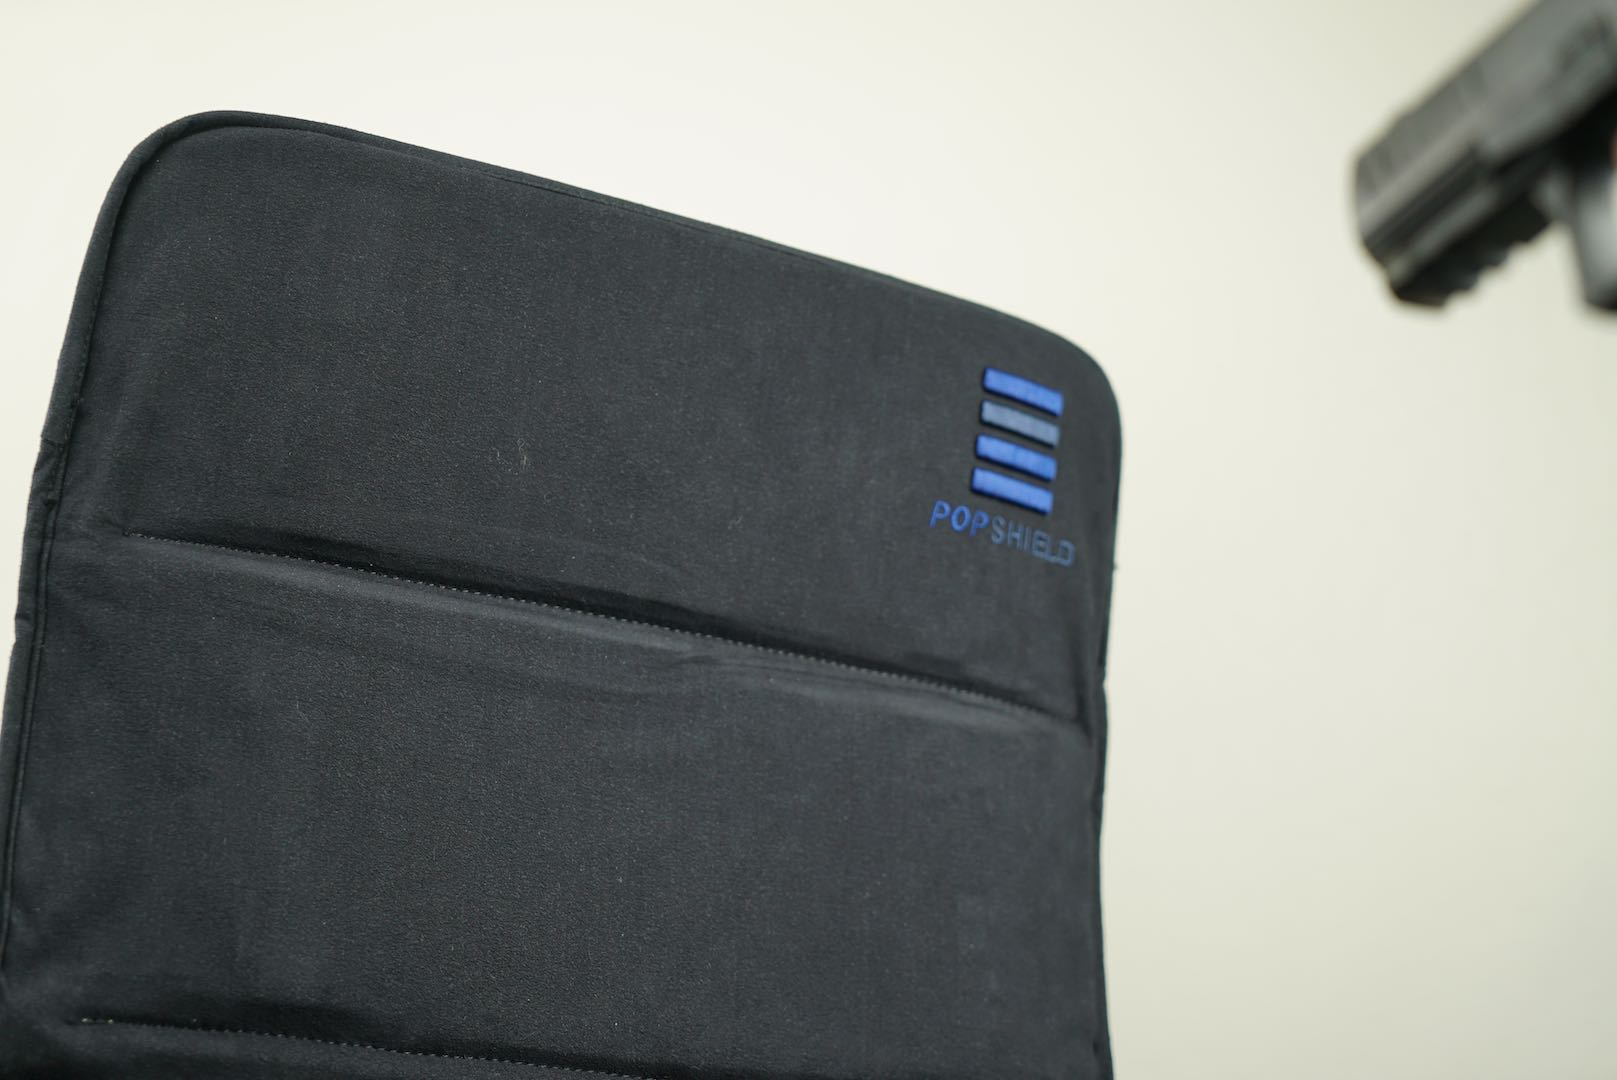 PopShield uses Kevlar Fabric due to strength